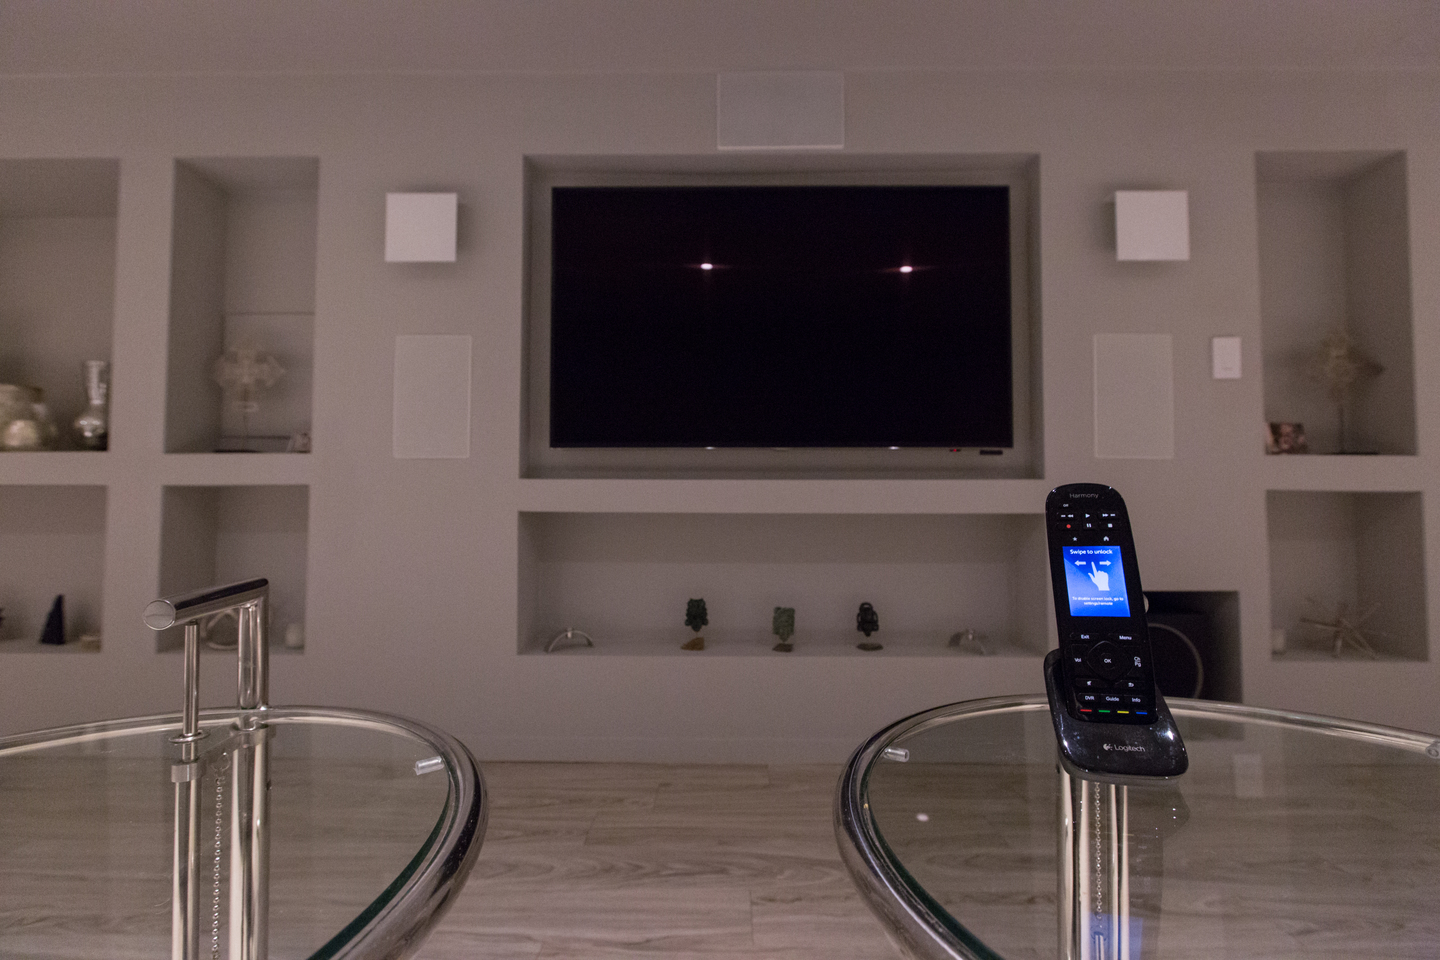 Logitech Harmony Touch Universal Remote Control in Media Room of Home Theater